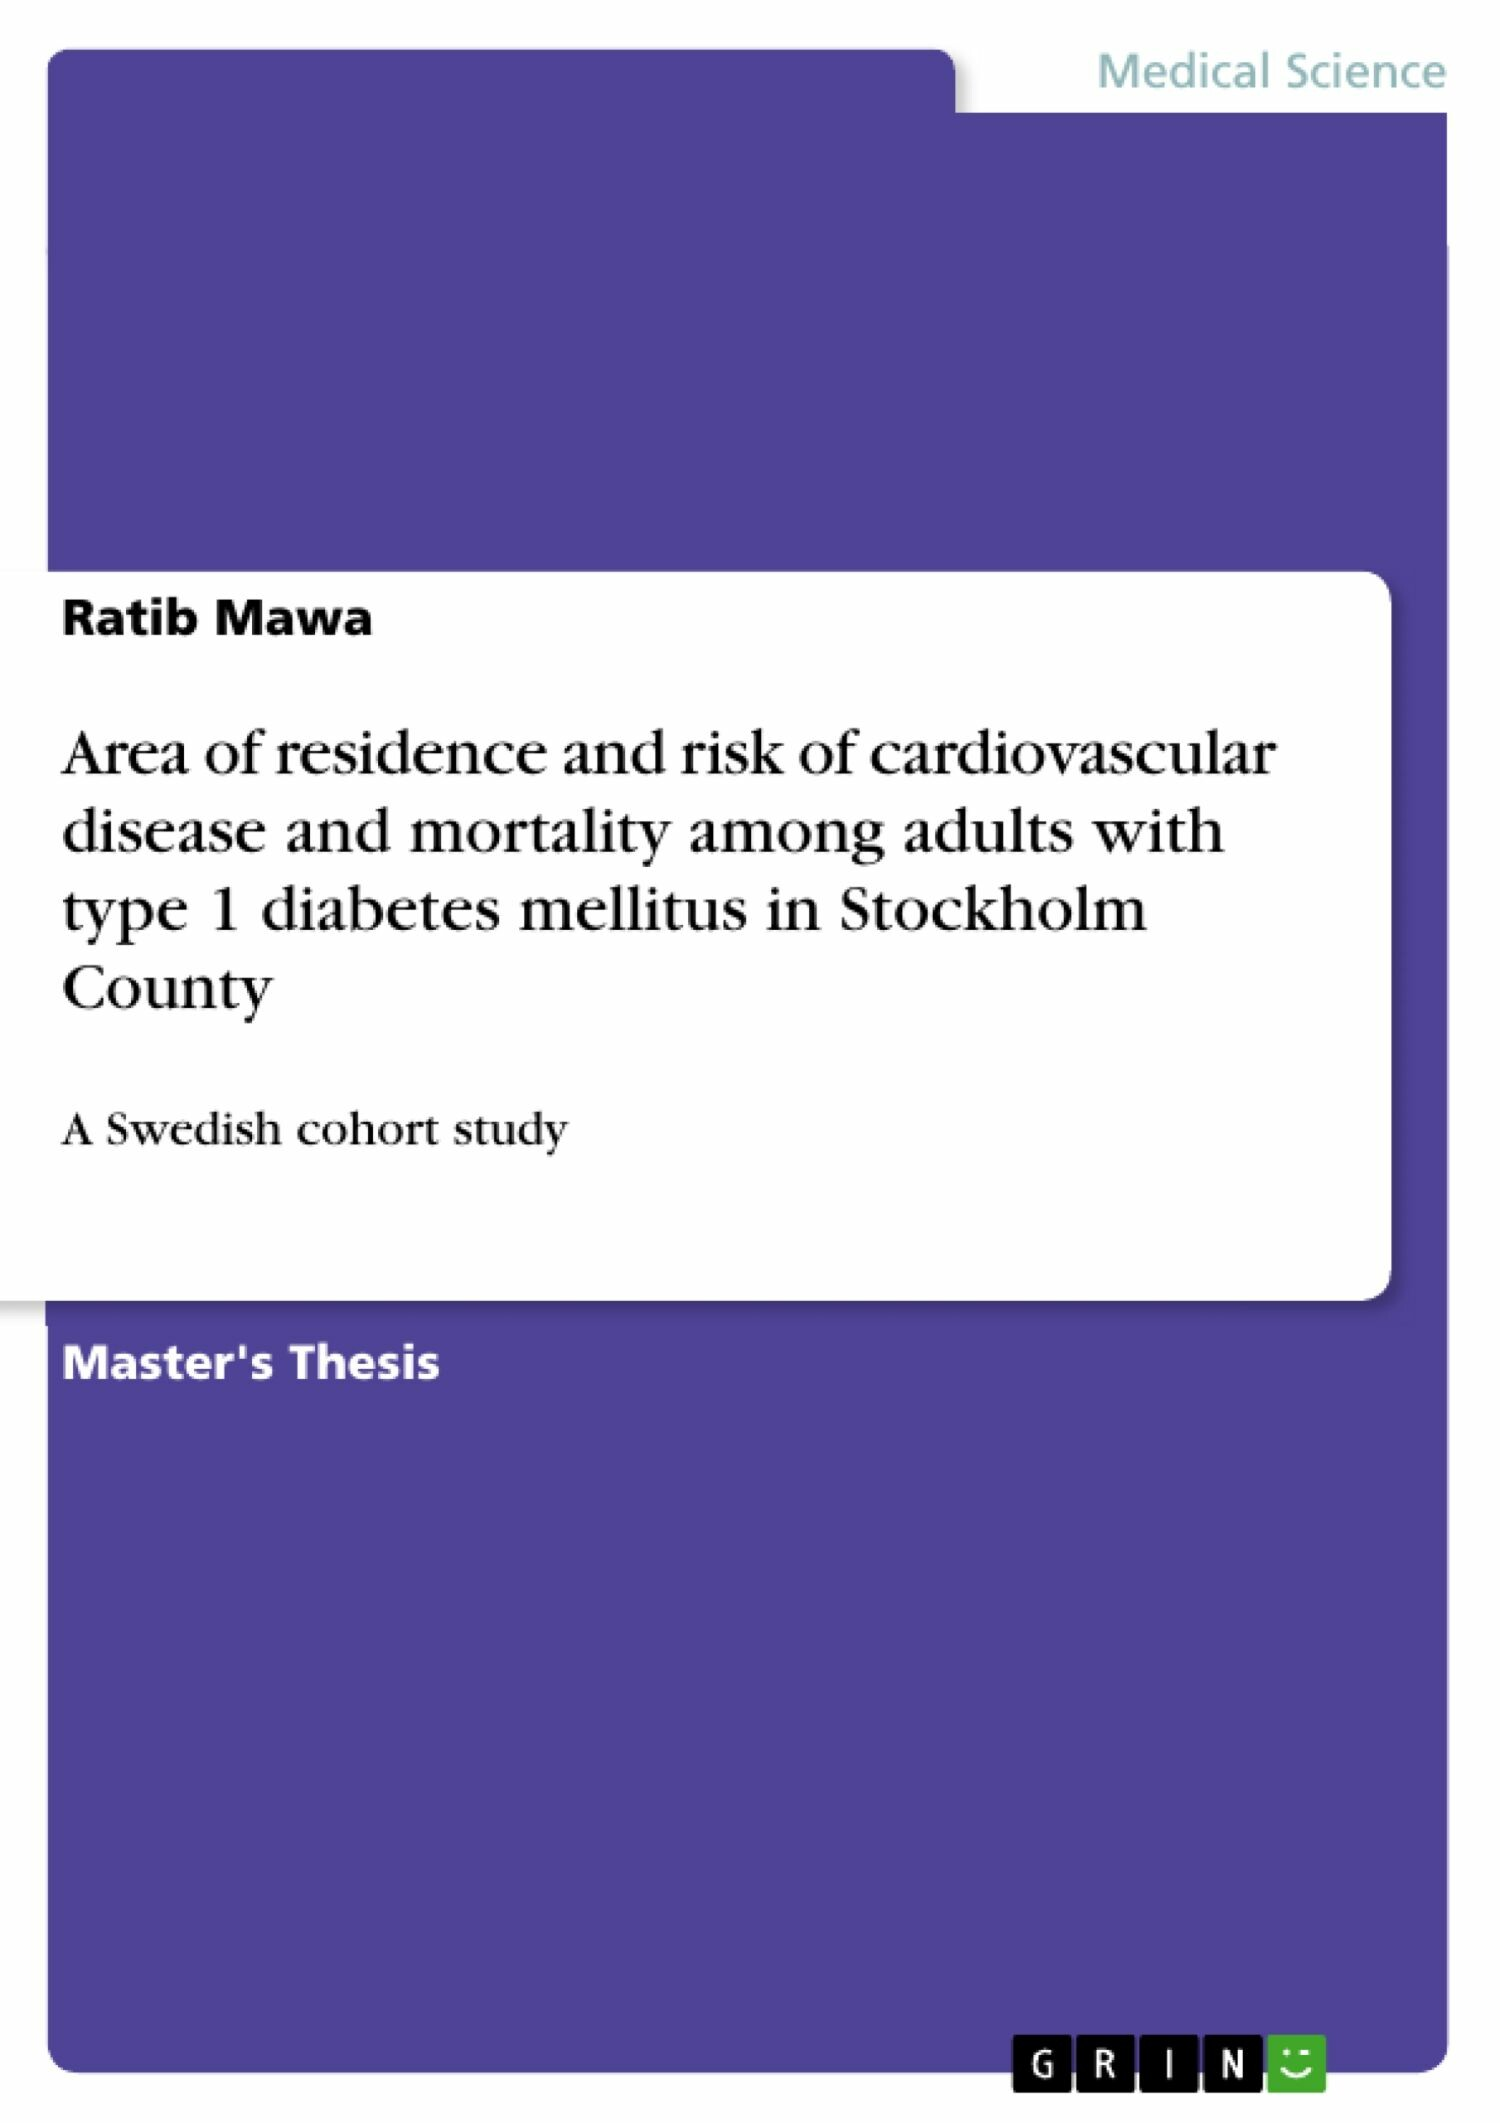 Area of residence and risk of cardiovascular disease and mortality among adults with type 1 diabetes mellitus in Stockholm County